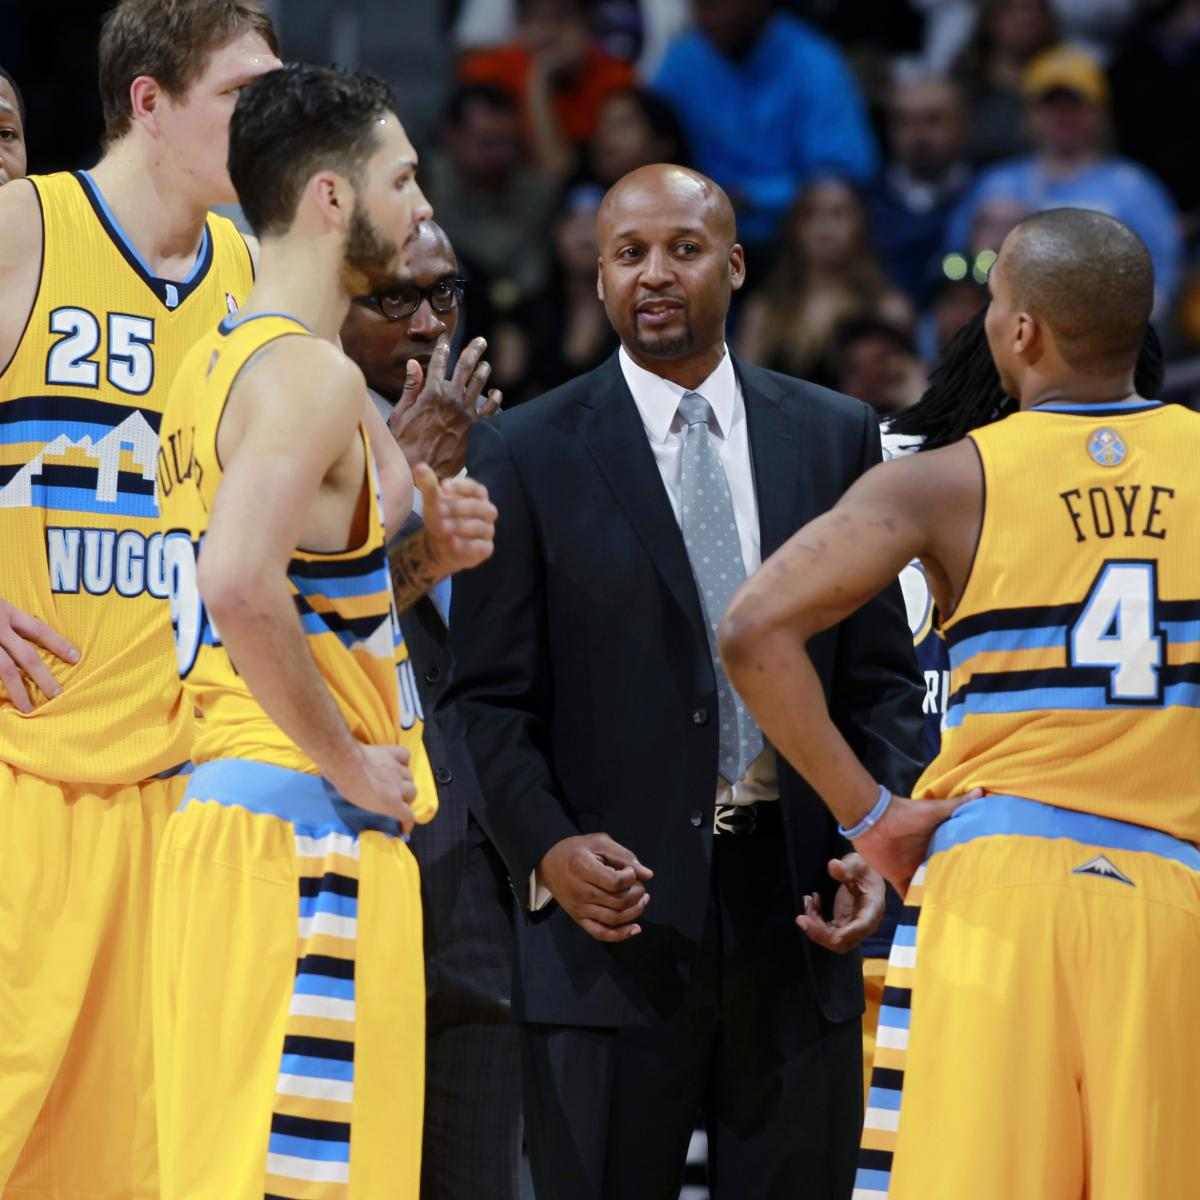 Denver Nuggets Famous Players: Which Denver Nuggets Player Has The Most Upside